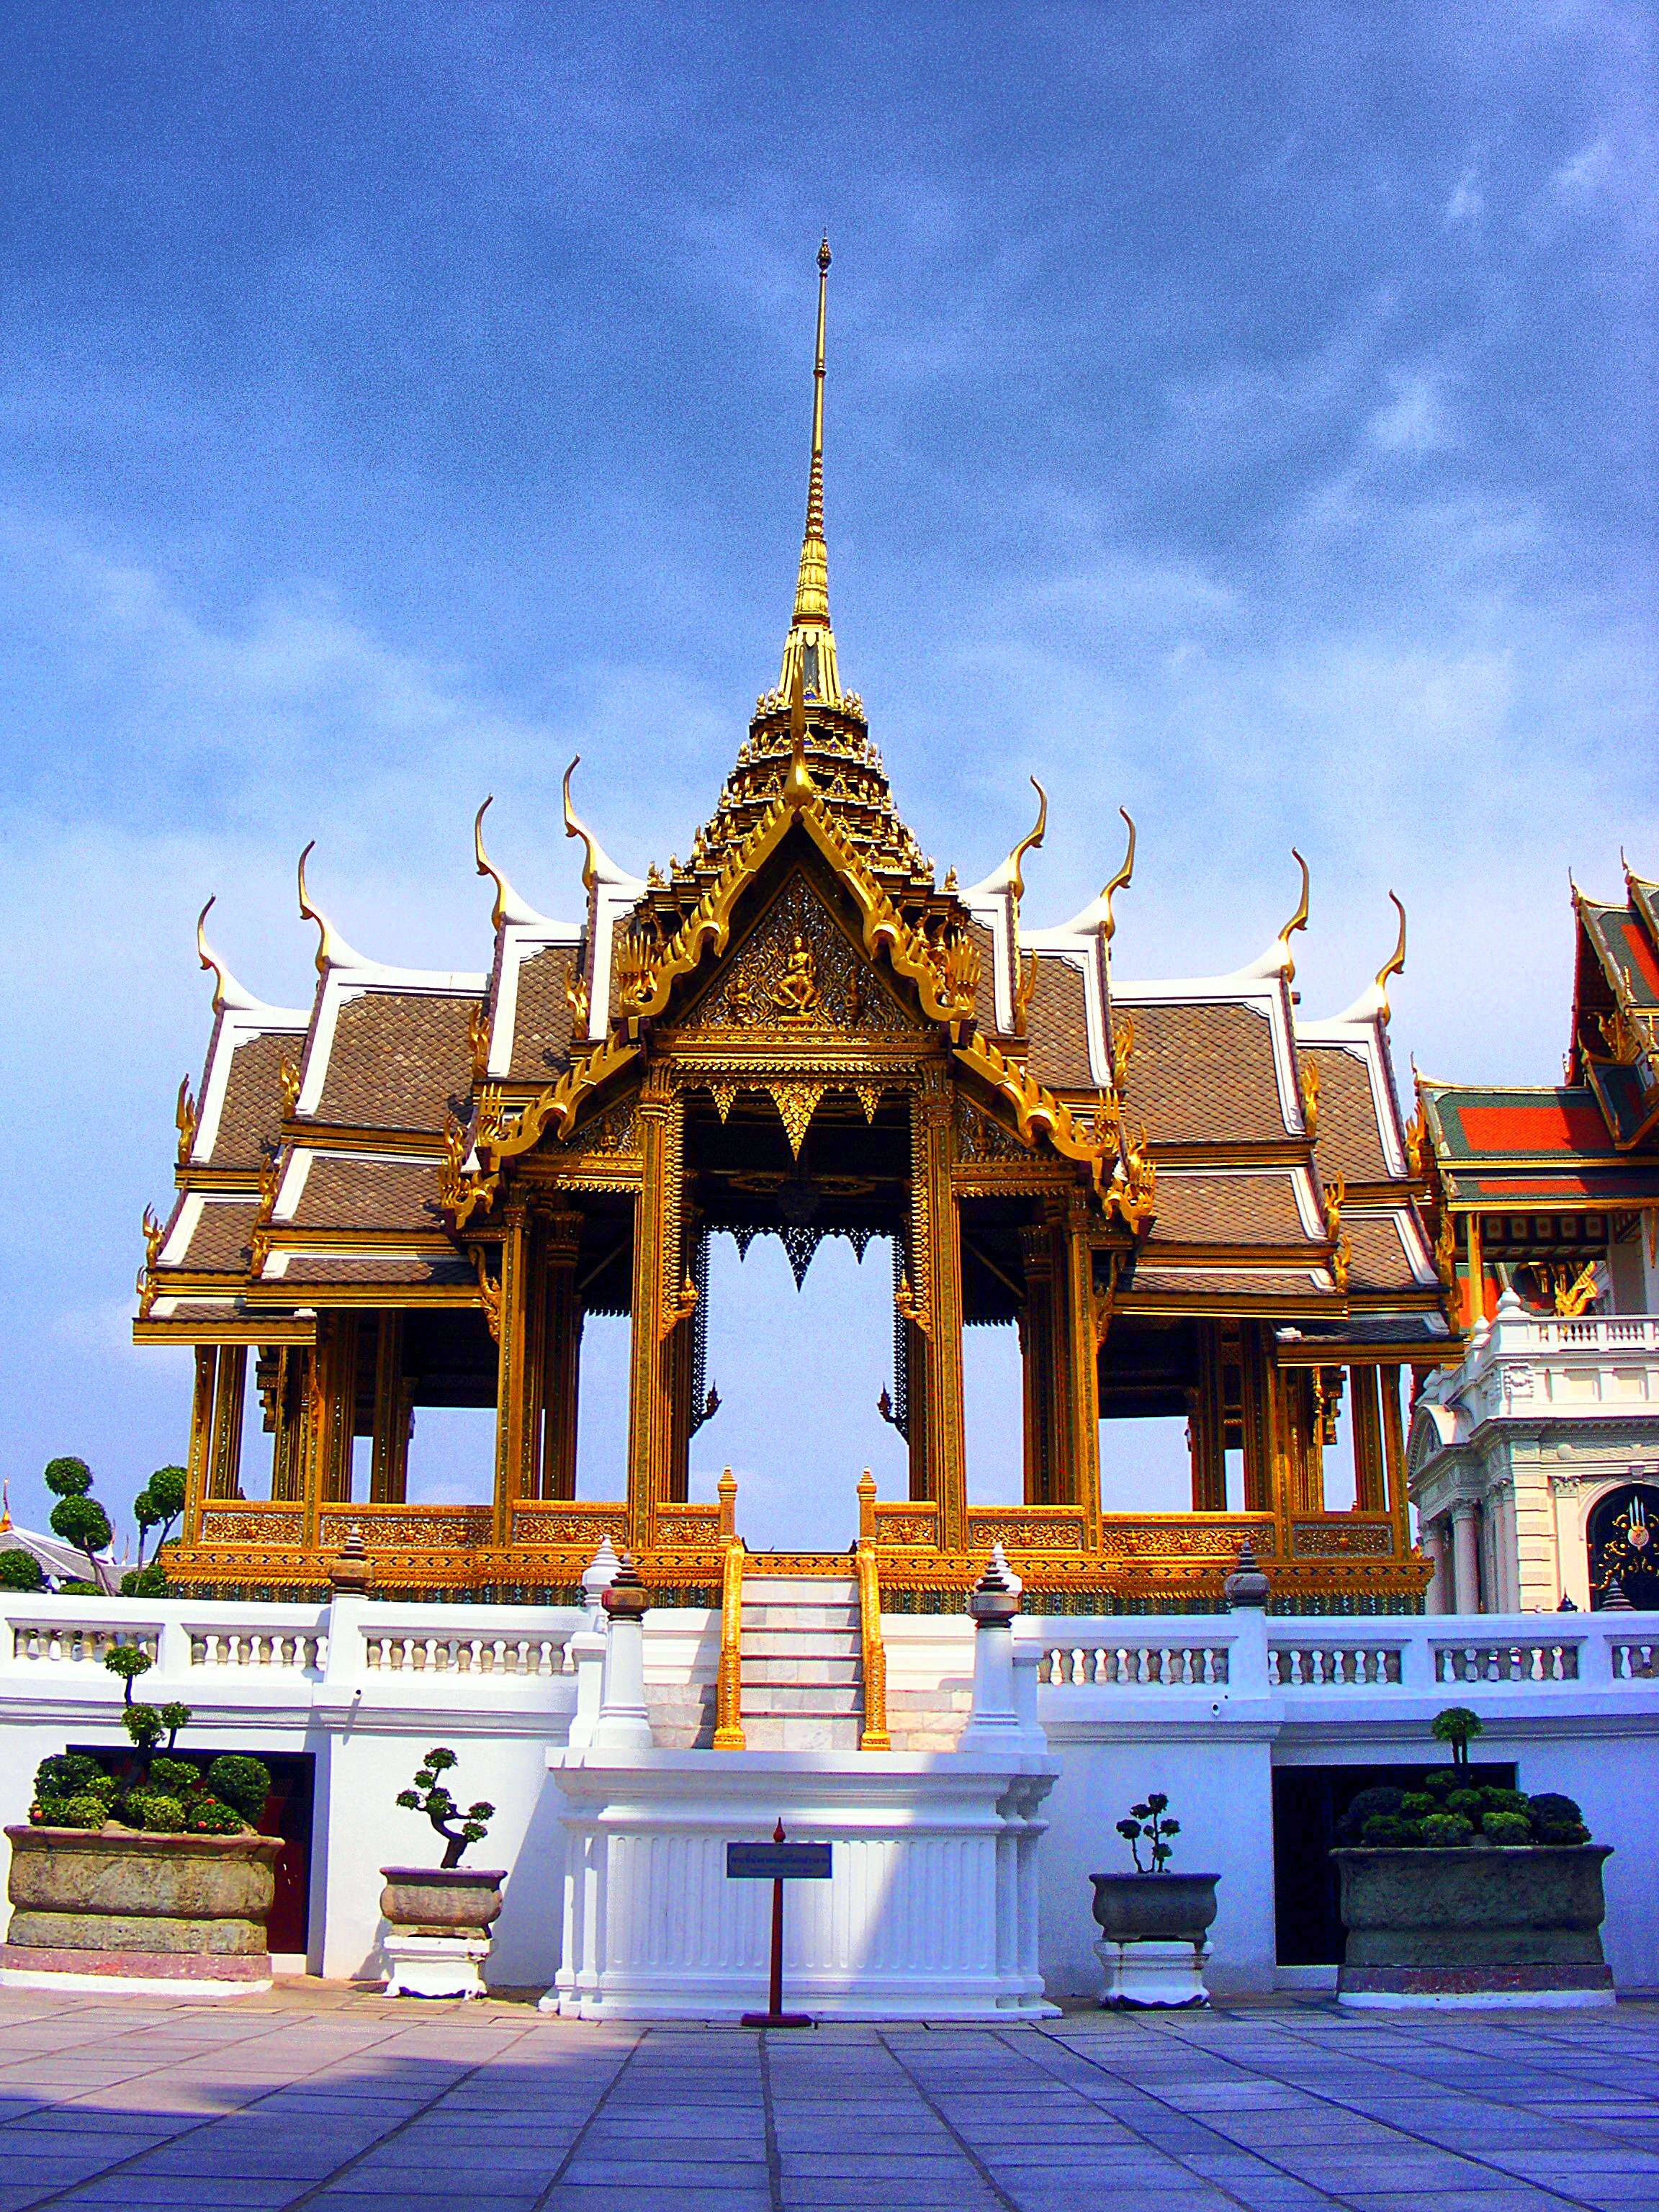 Grand Palace of Thailand Historical Facts and Pictures